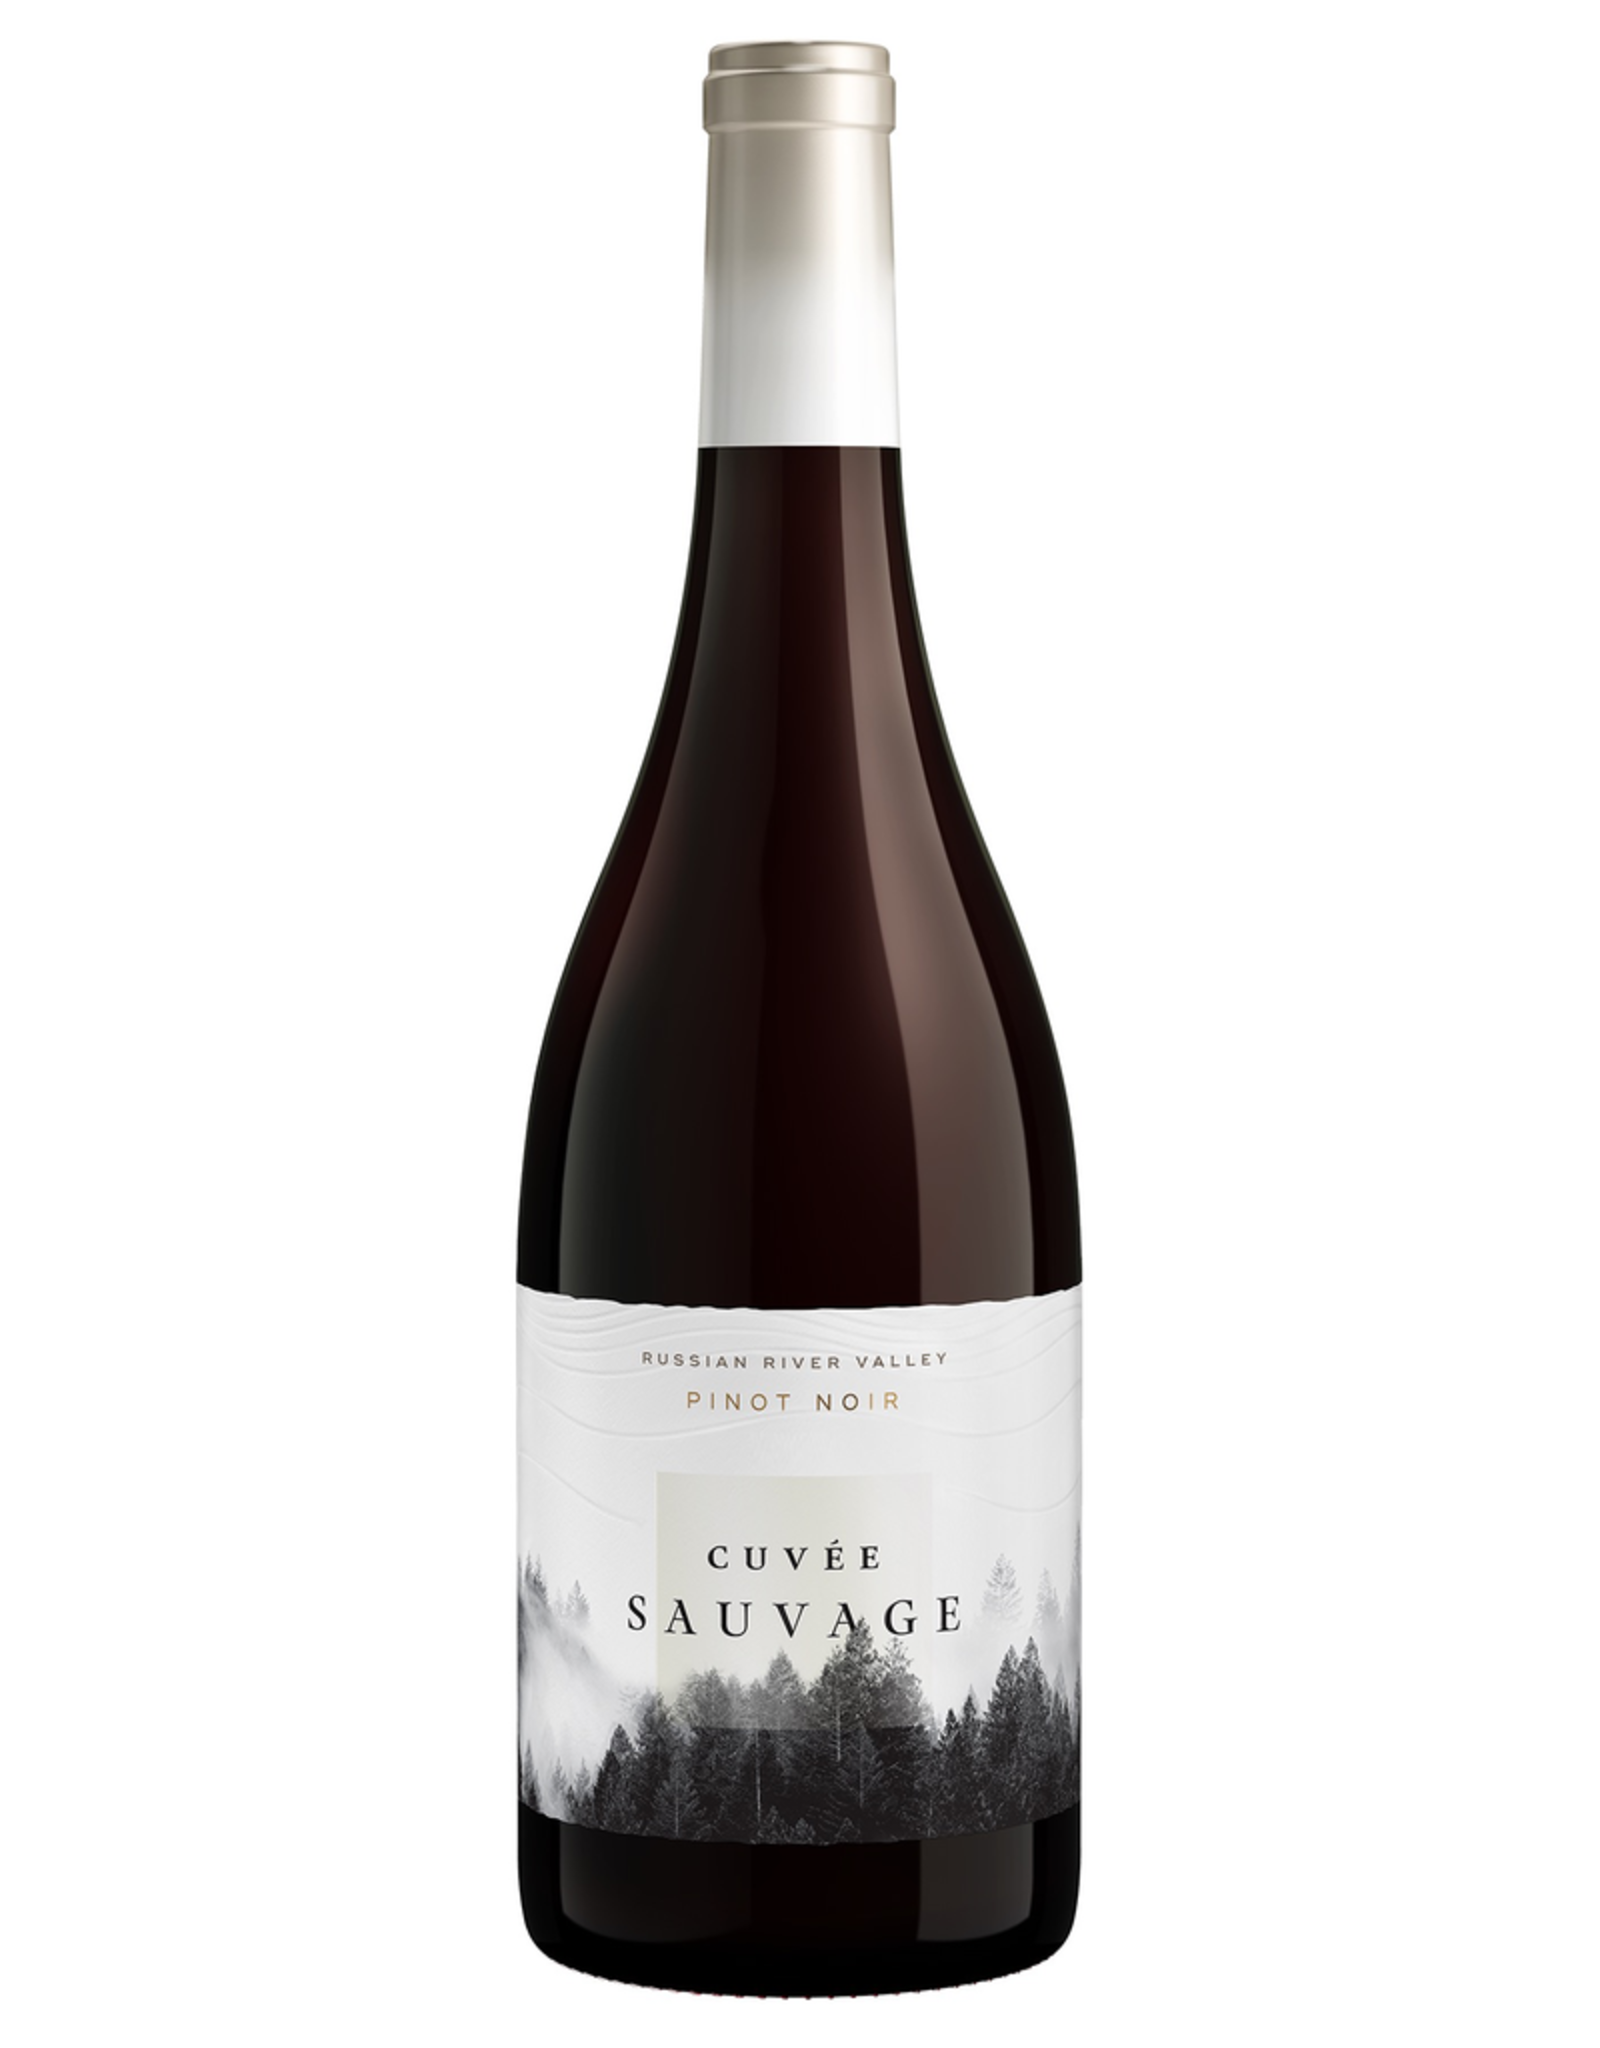 Red Wine 2017, Cuvee Sauvage, Pinot Noir, Russian River, Sonoma County, California, 14.5% Alc, CT 90